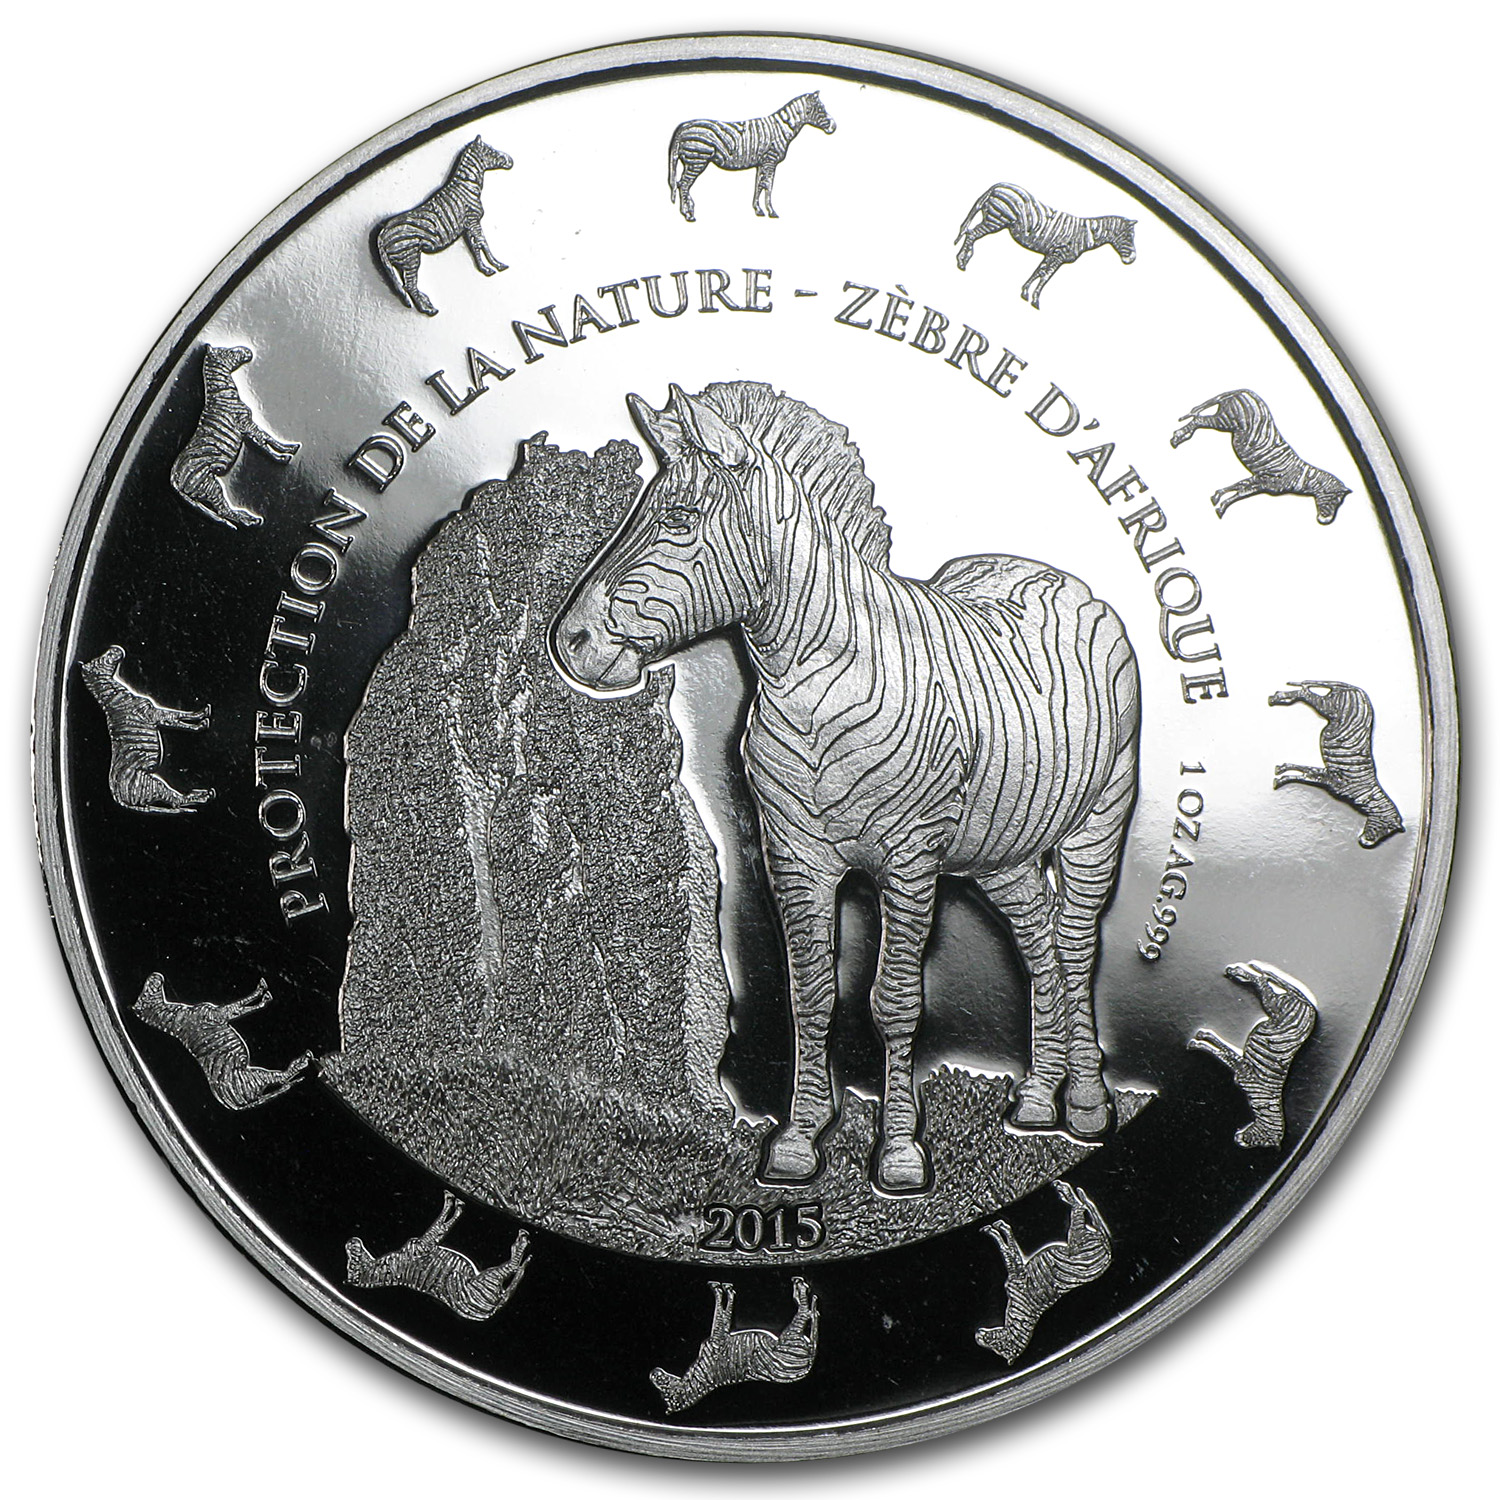 2015 Benin 1 oz Silver Protection de la Nature Zebra